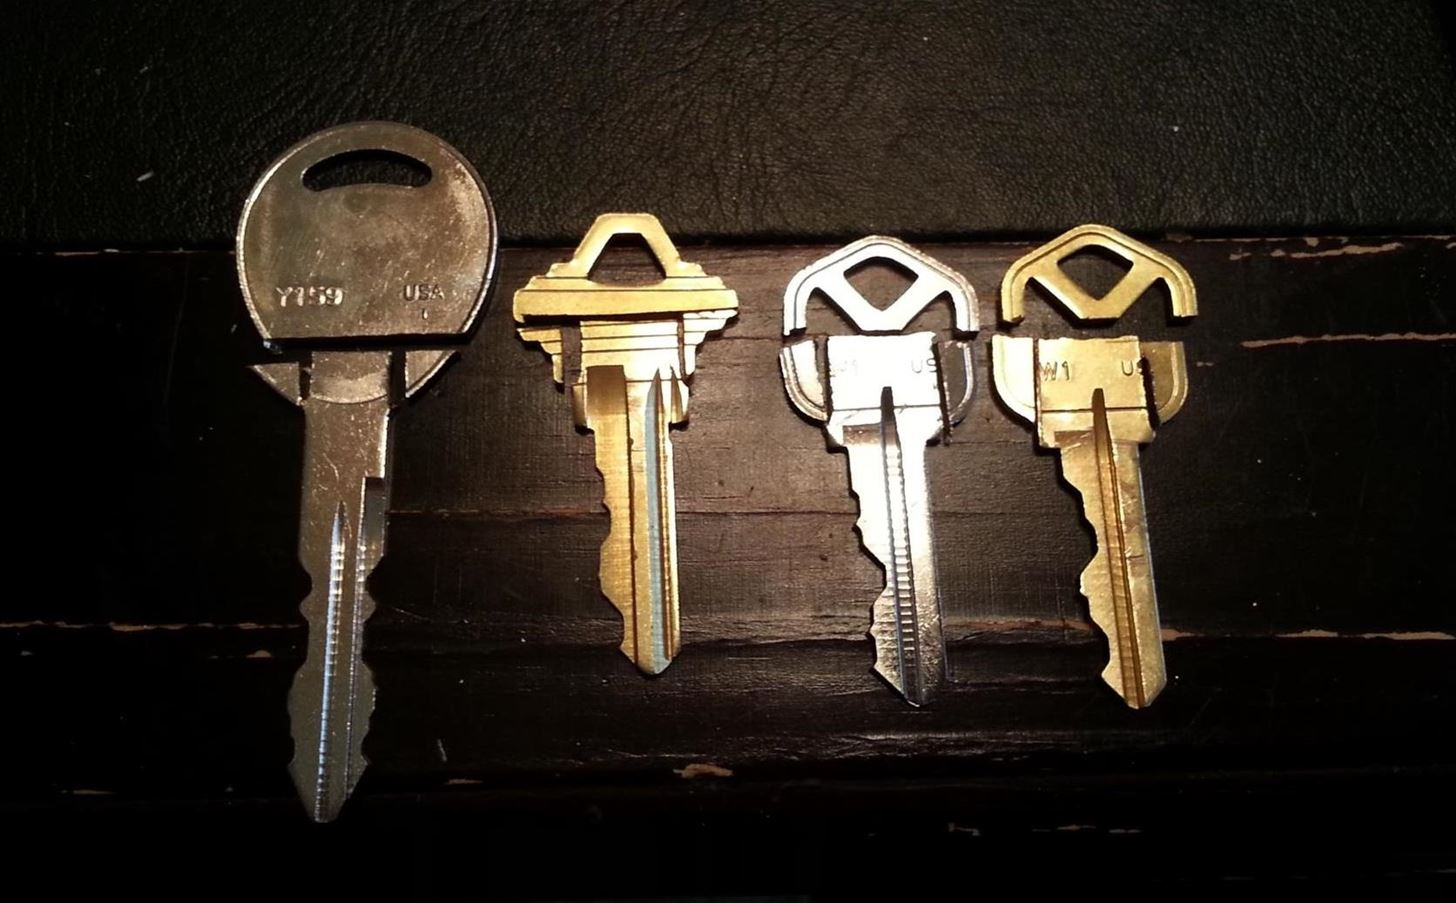 Trade in Your Bulky Set of Keys for This Simple DIY Swiss Army-Style Keychain